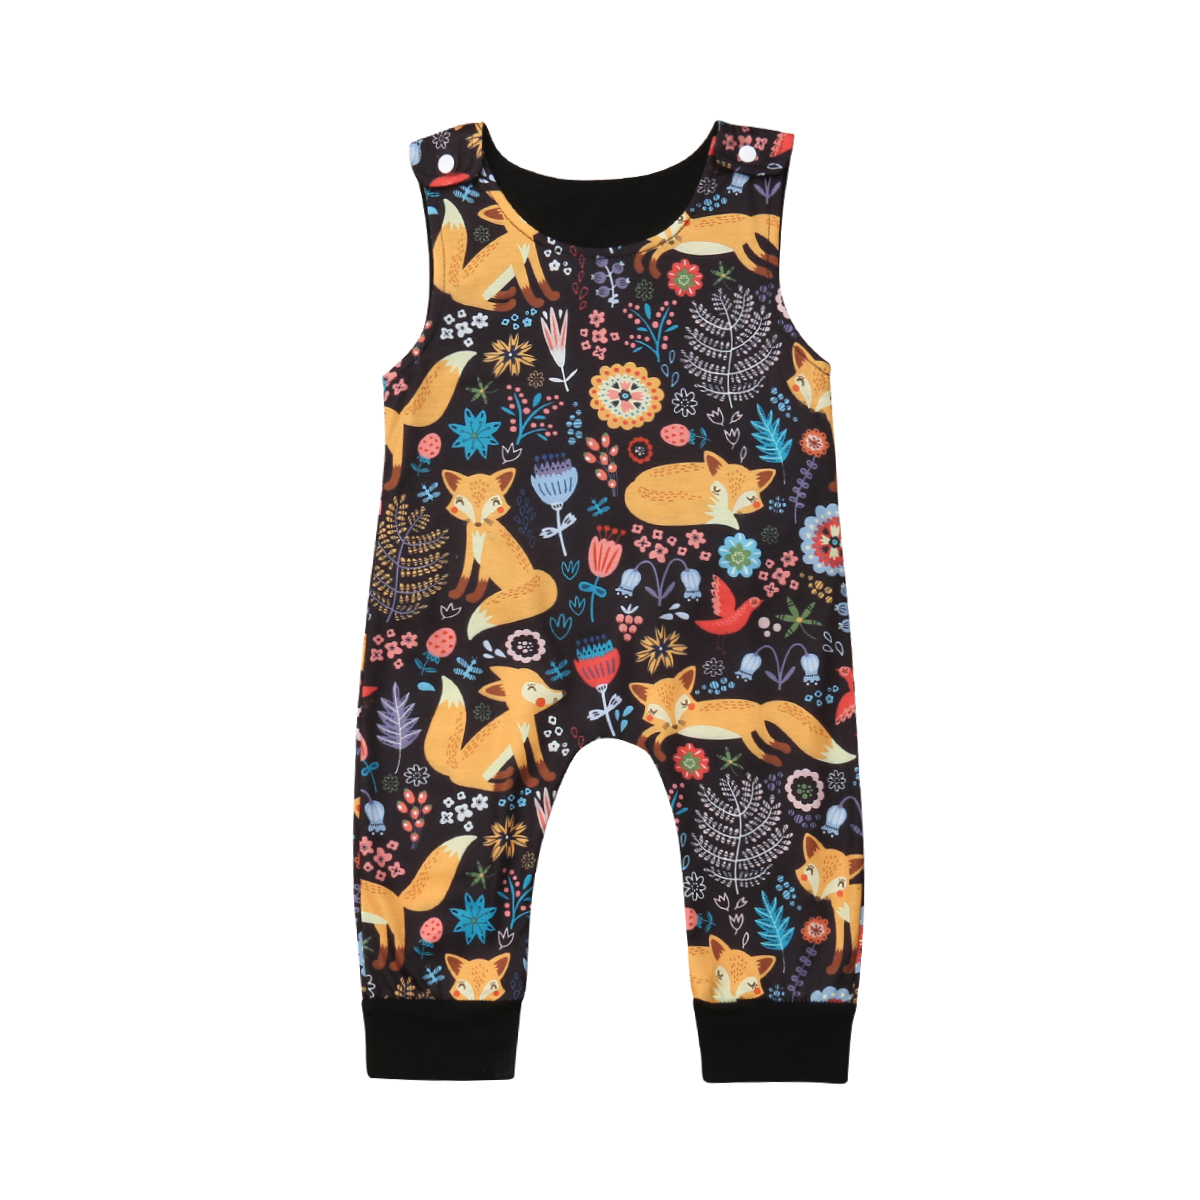 Newborn Baby Boy Girl Cartoon Fox Romper Jumpsuit Sunsuit Summer Outfits Clothes